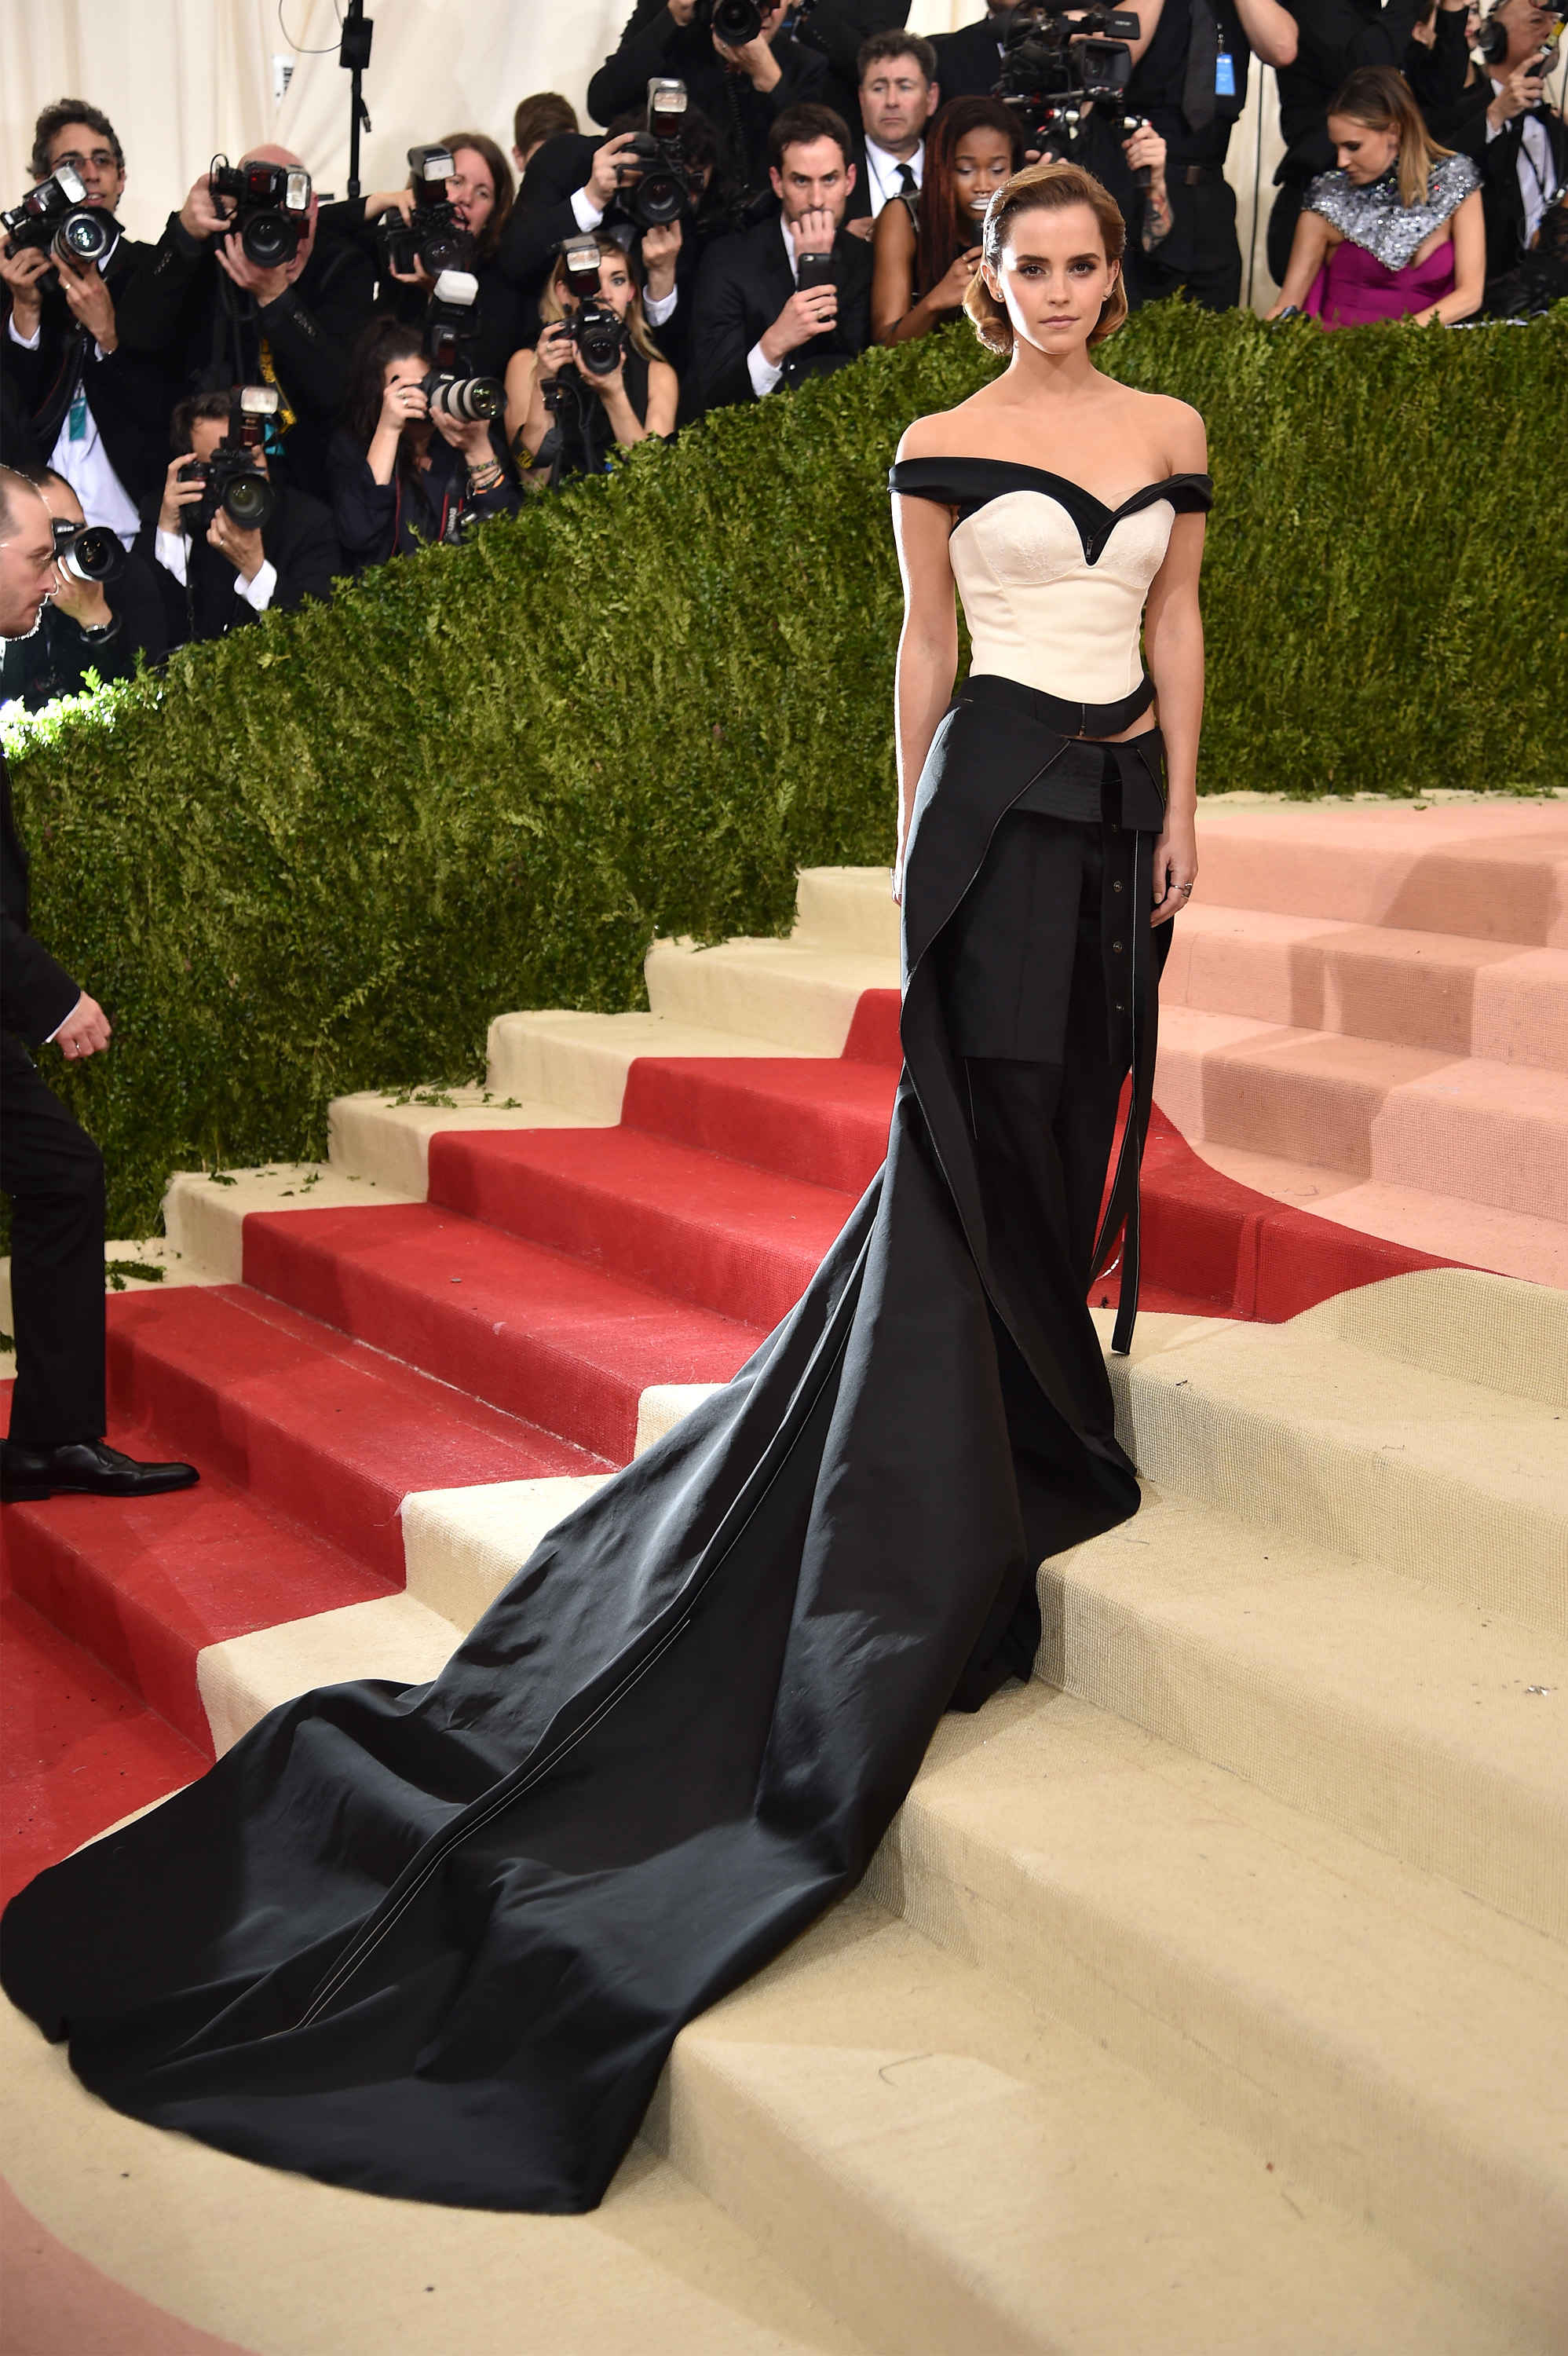 Emma Watson in Calvin Klein. The dress was made out of recycled bottles. El vestido fue hecho de botellas recicladas.